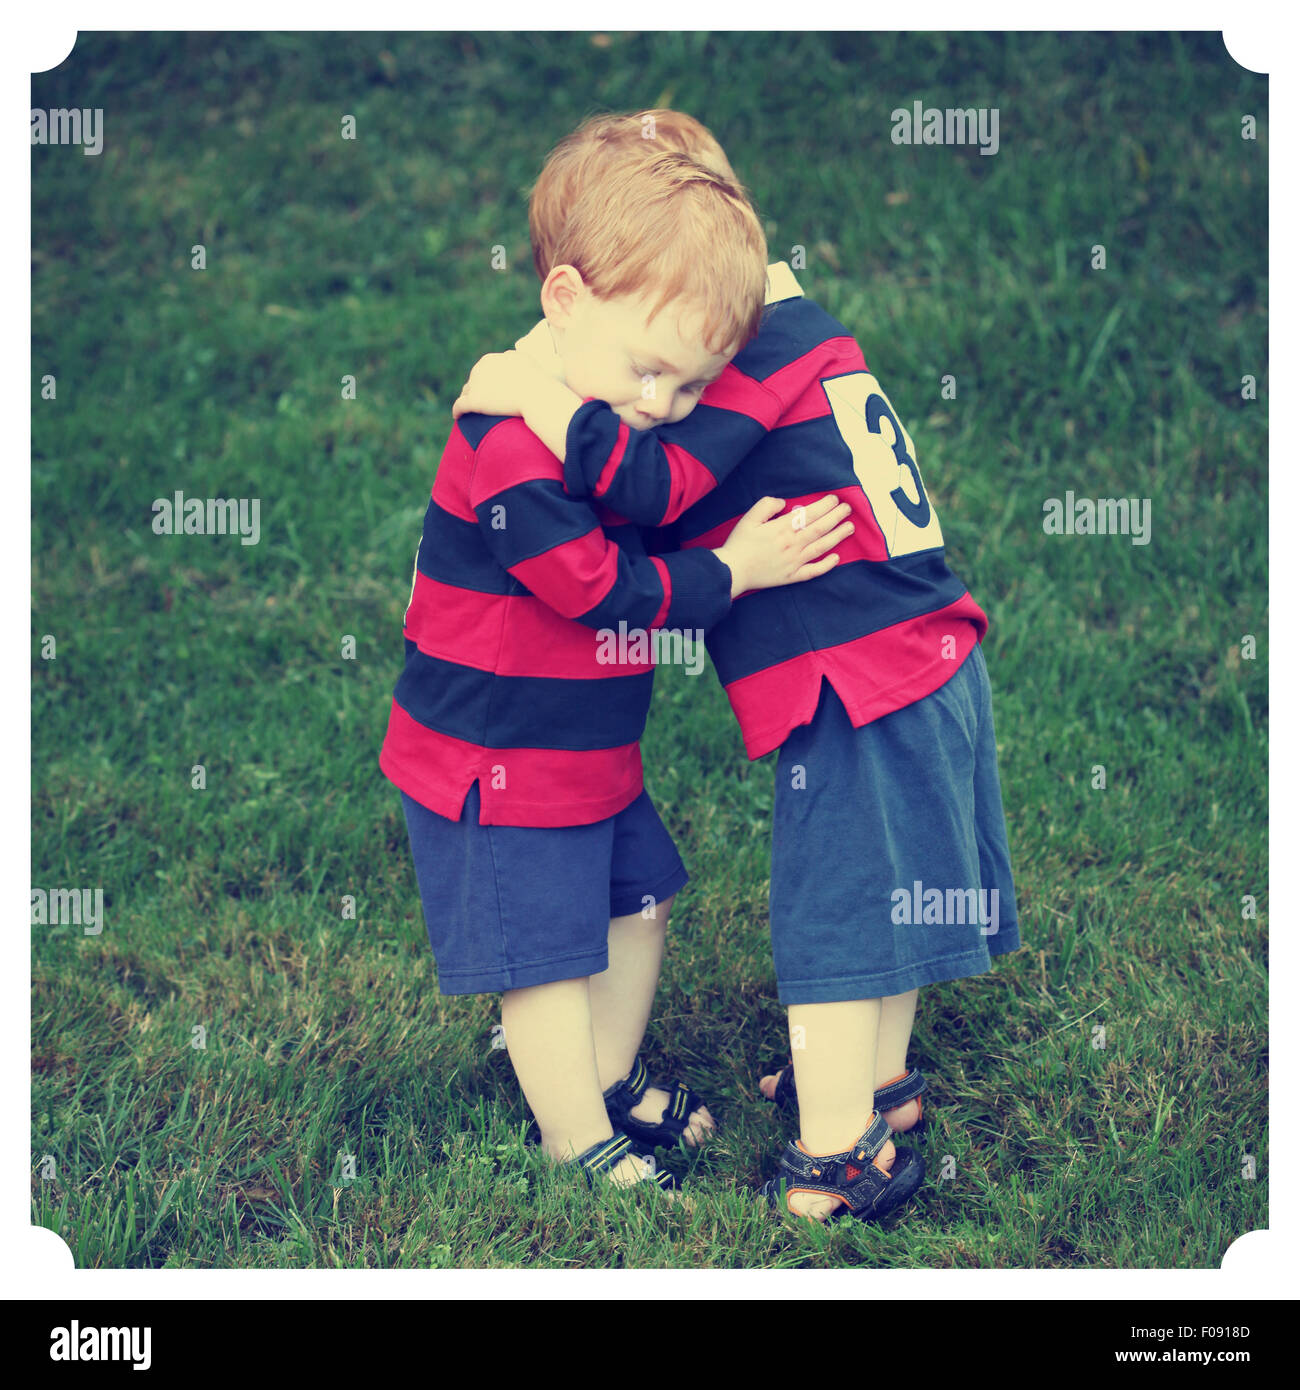 Twin baby boys hugging in rugby clothing with Instagram effect filter - Stock Image